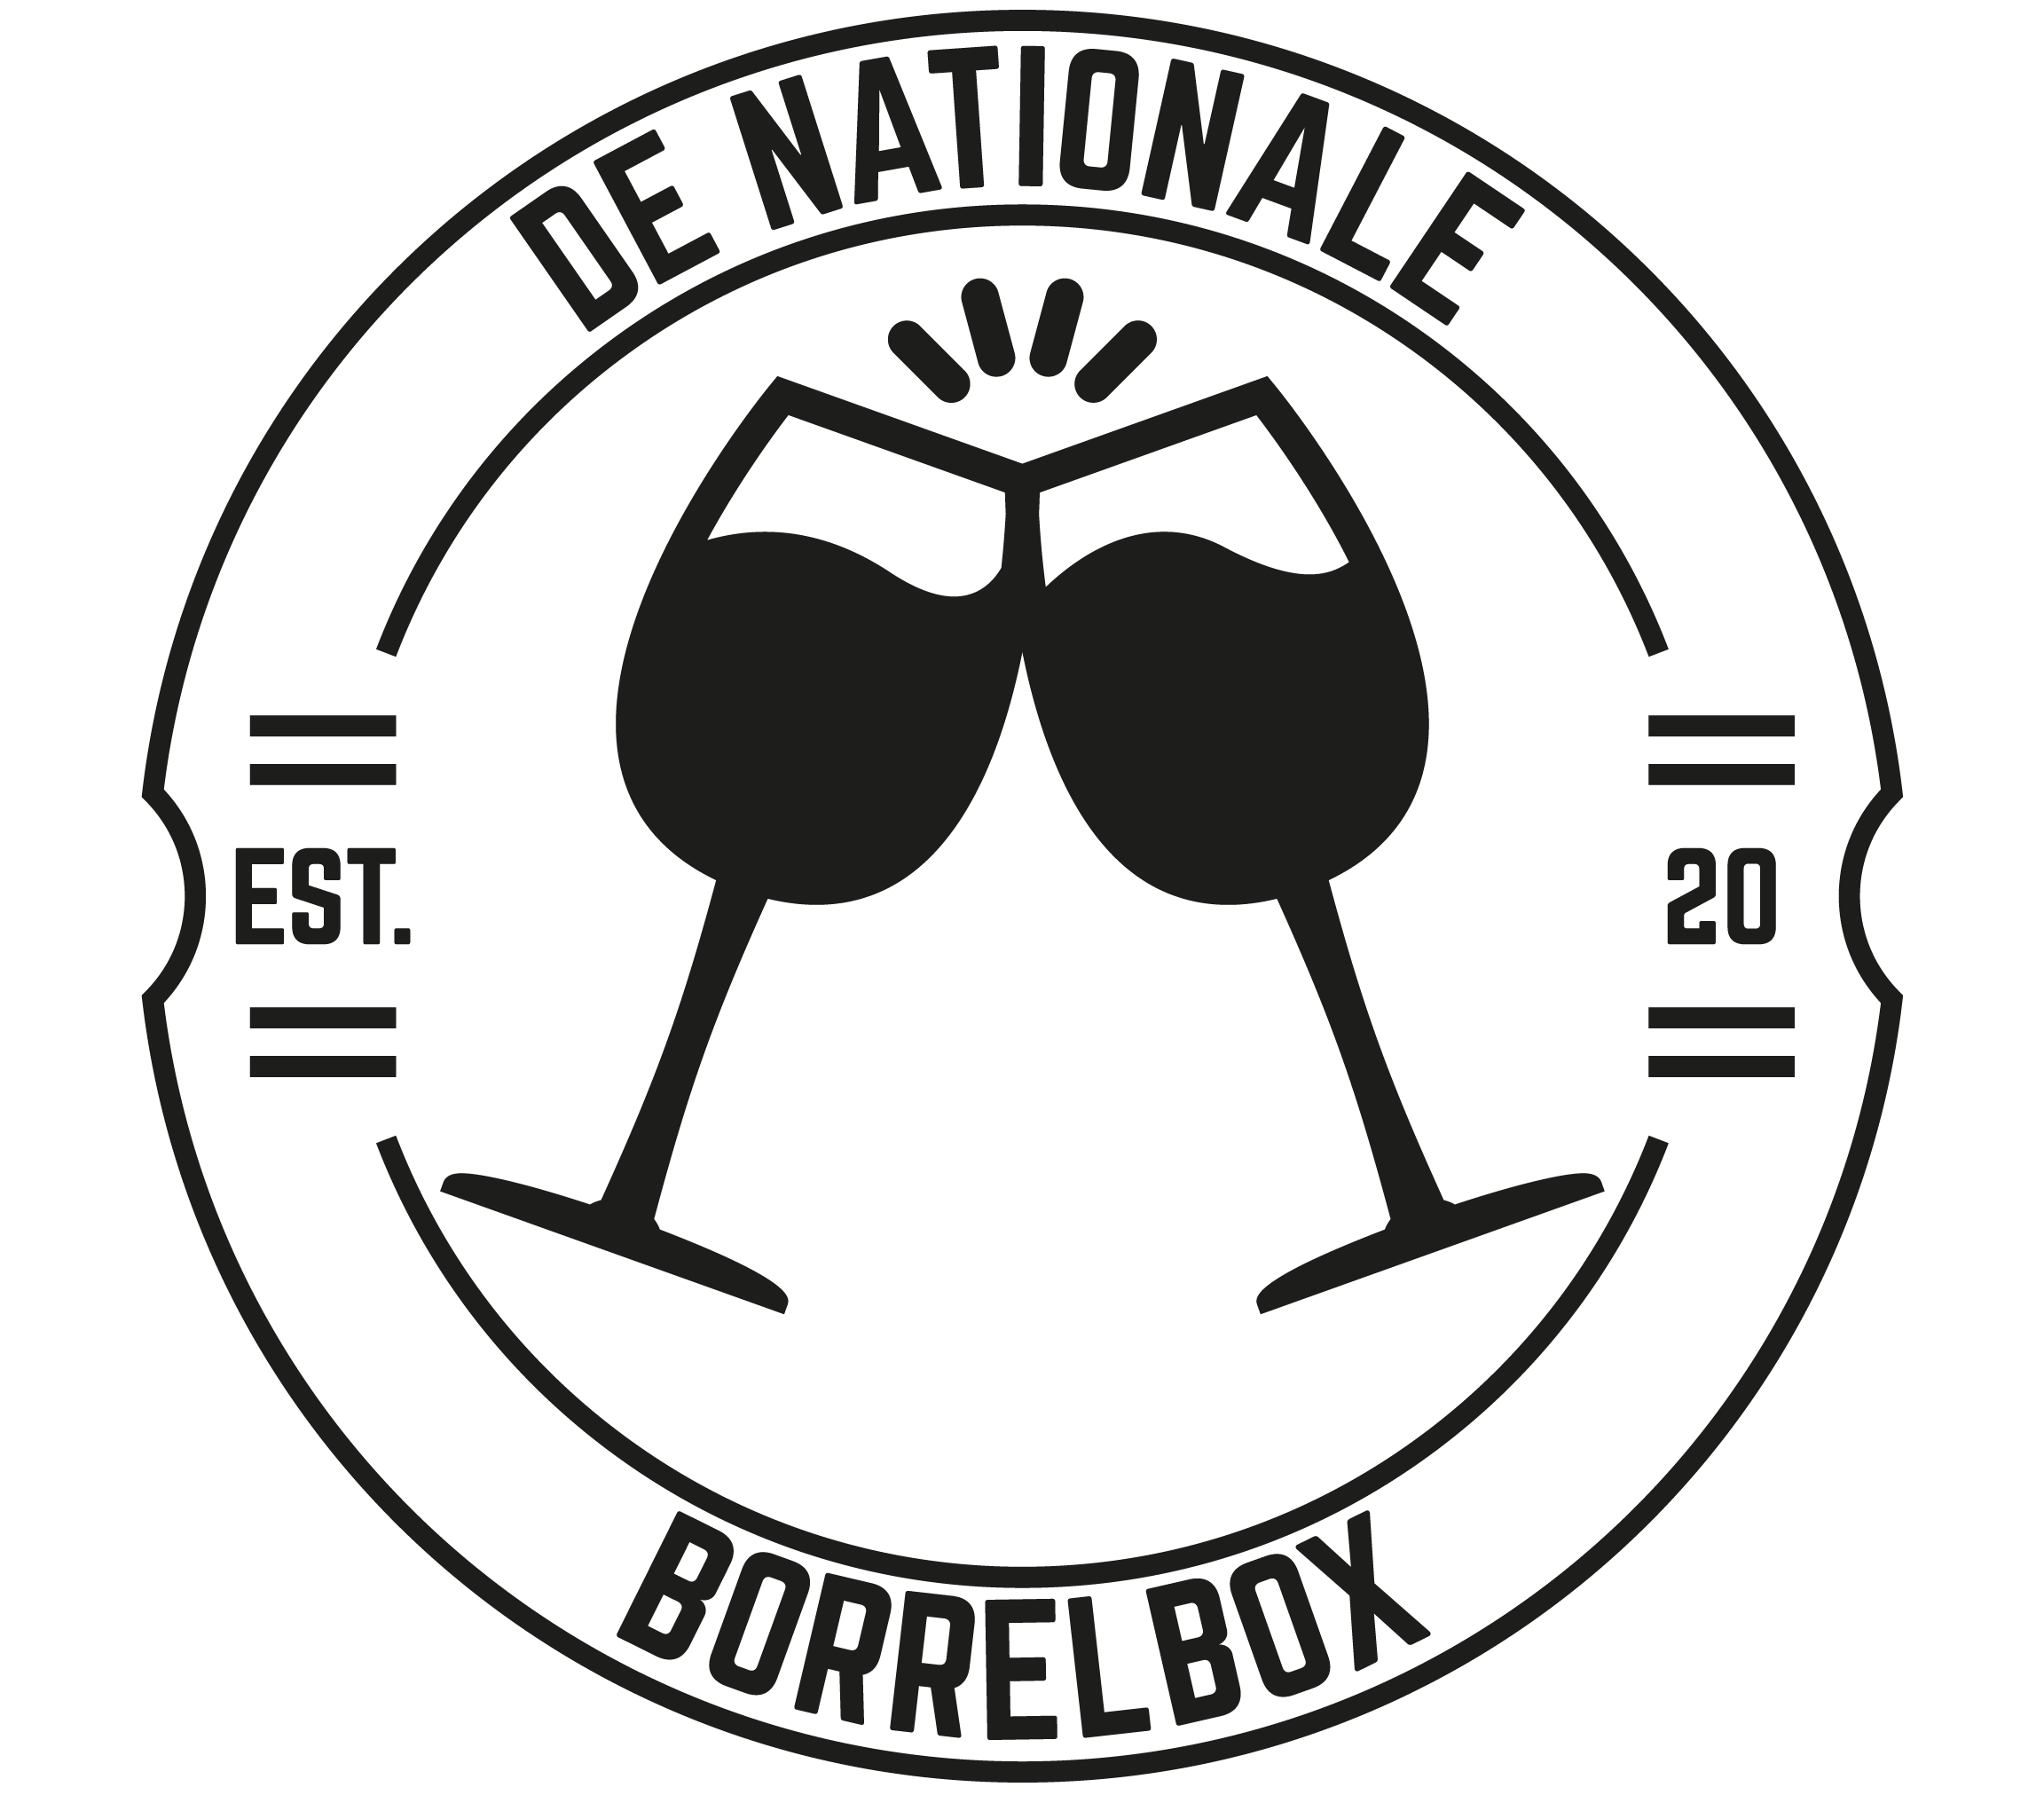 Nationale Borrel Box